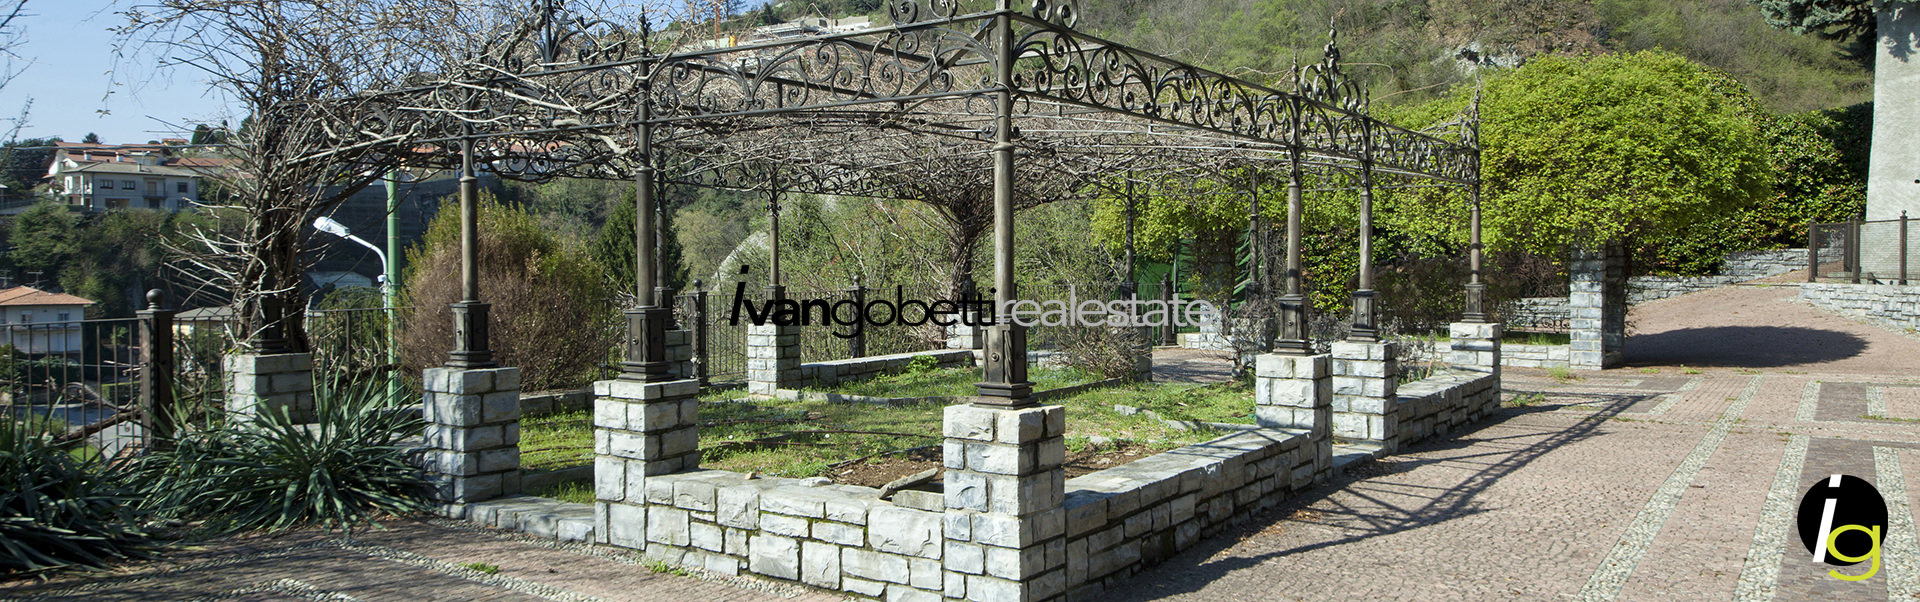 For sale prestigious villa with park and lake view in Cernobbio